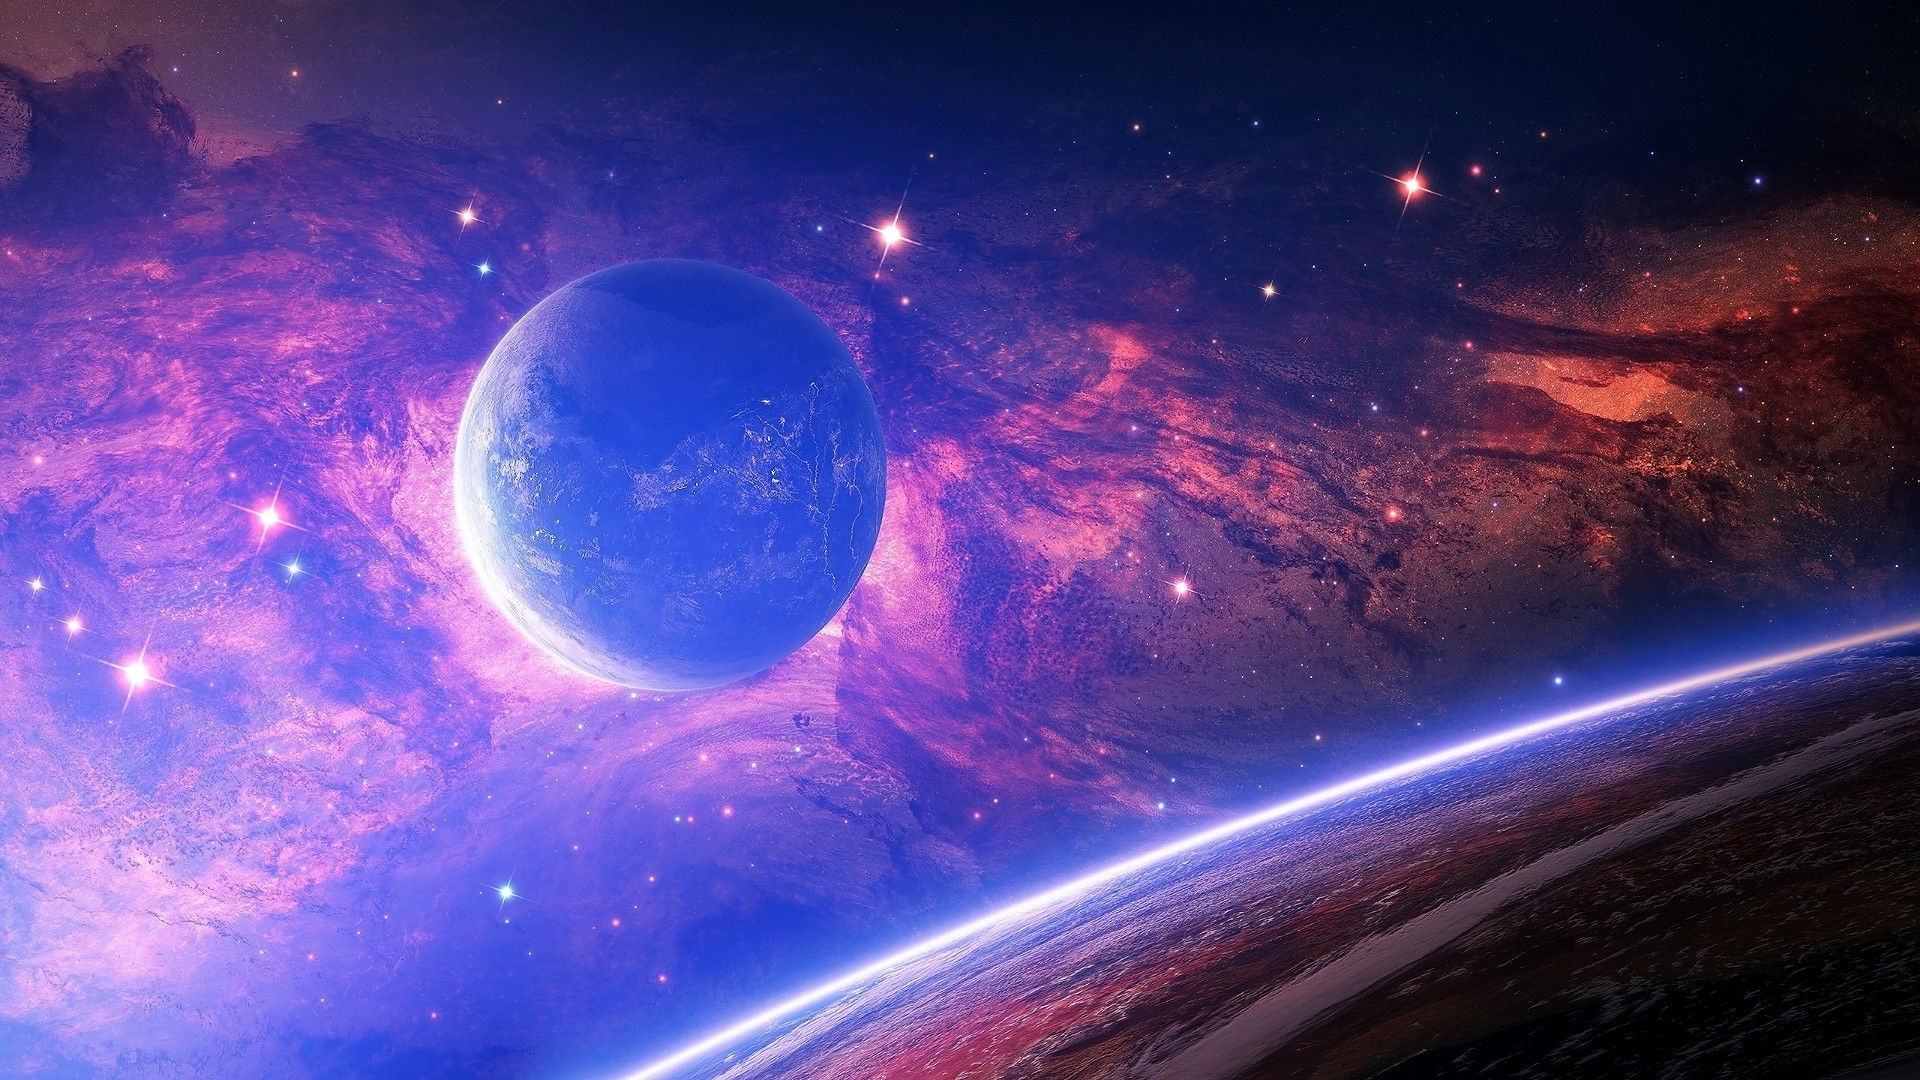 space pc wallpaper,outer space,atmosphere,astronomical object,sky,universe